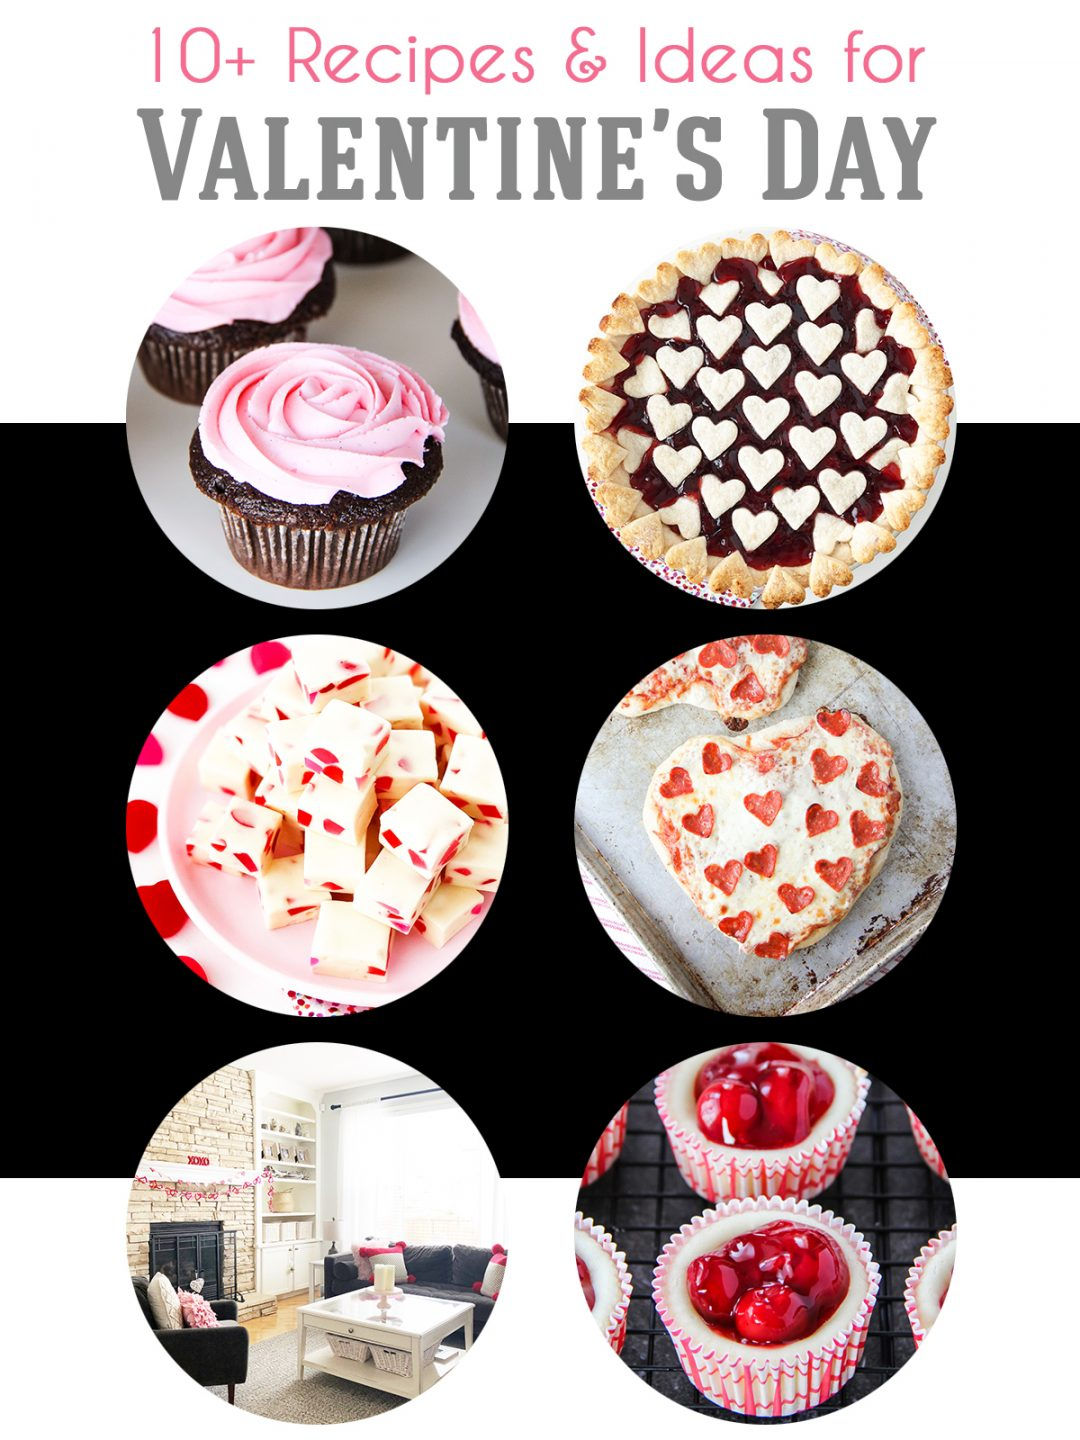 10+ Recipes and Ideas for Valentine's Day